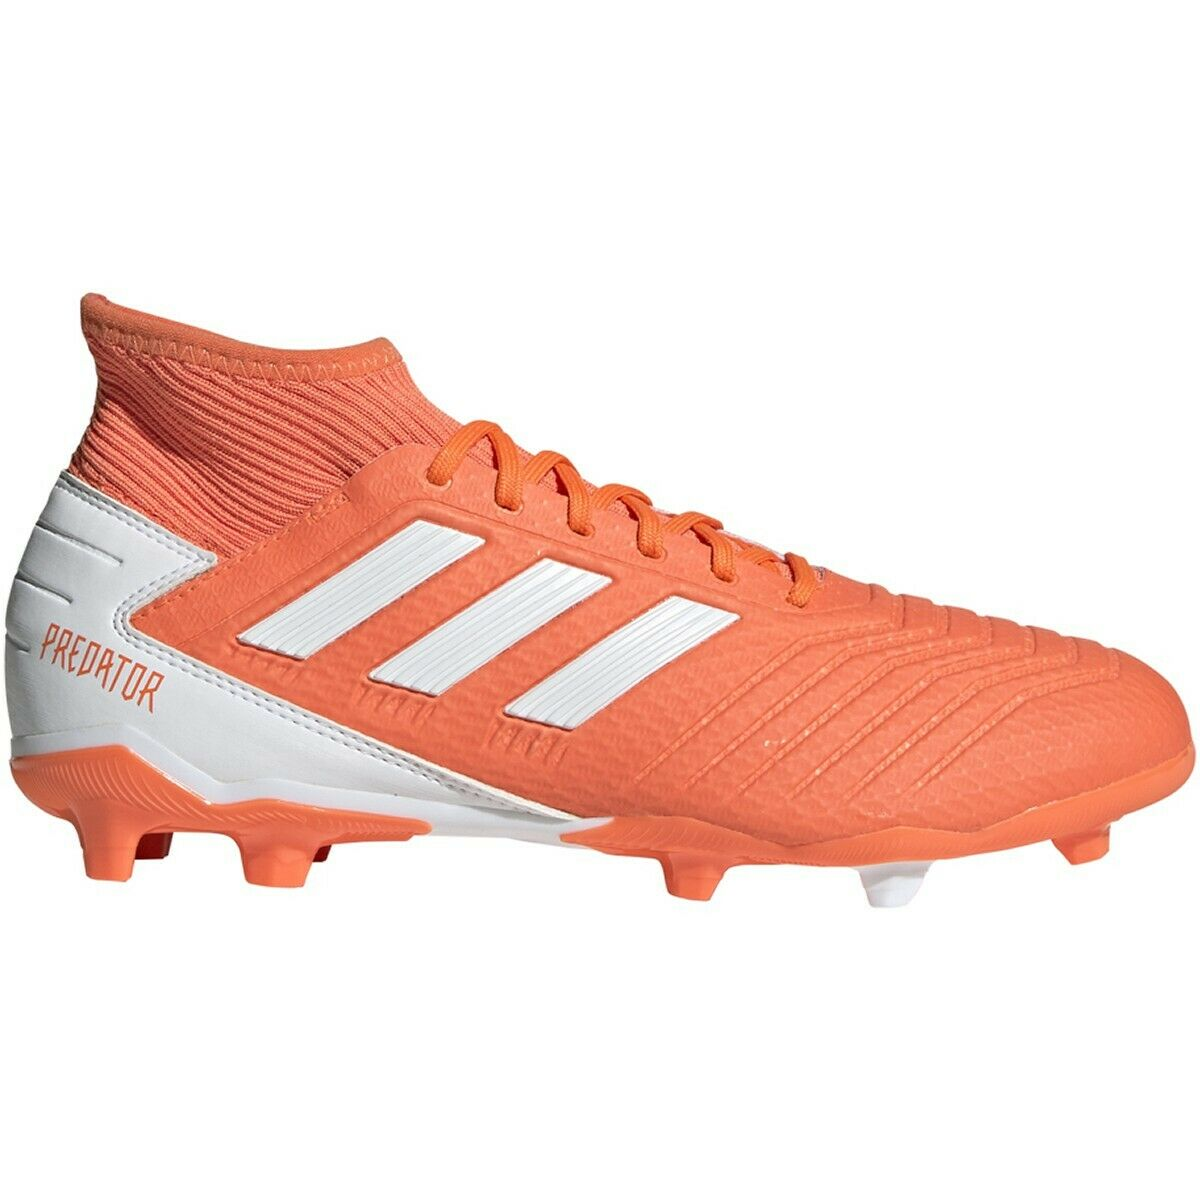 Adidas 2019 Wouomo Prossoator 19.3 FG Firm Ground Soccer Cleats All Dimensiones